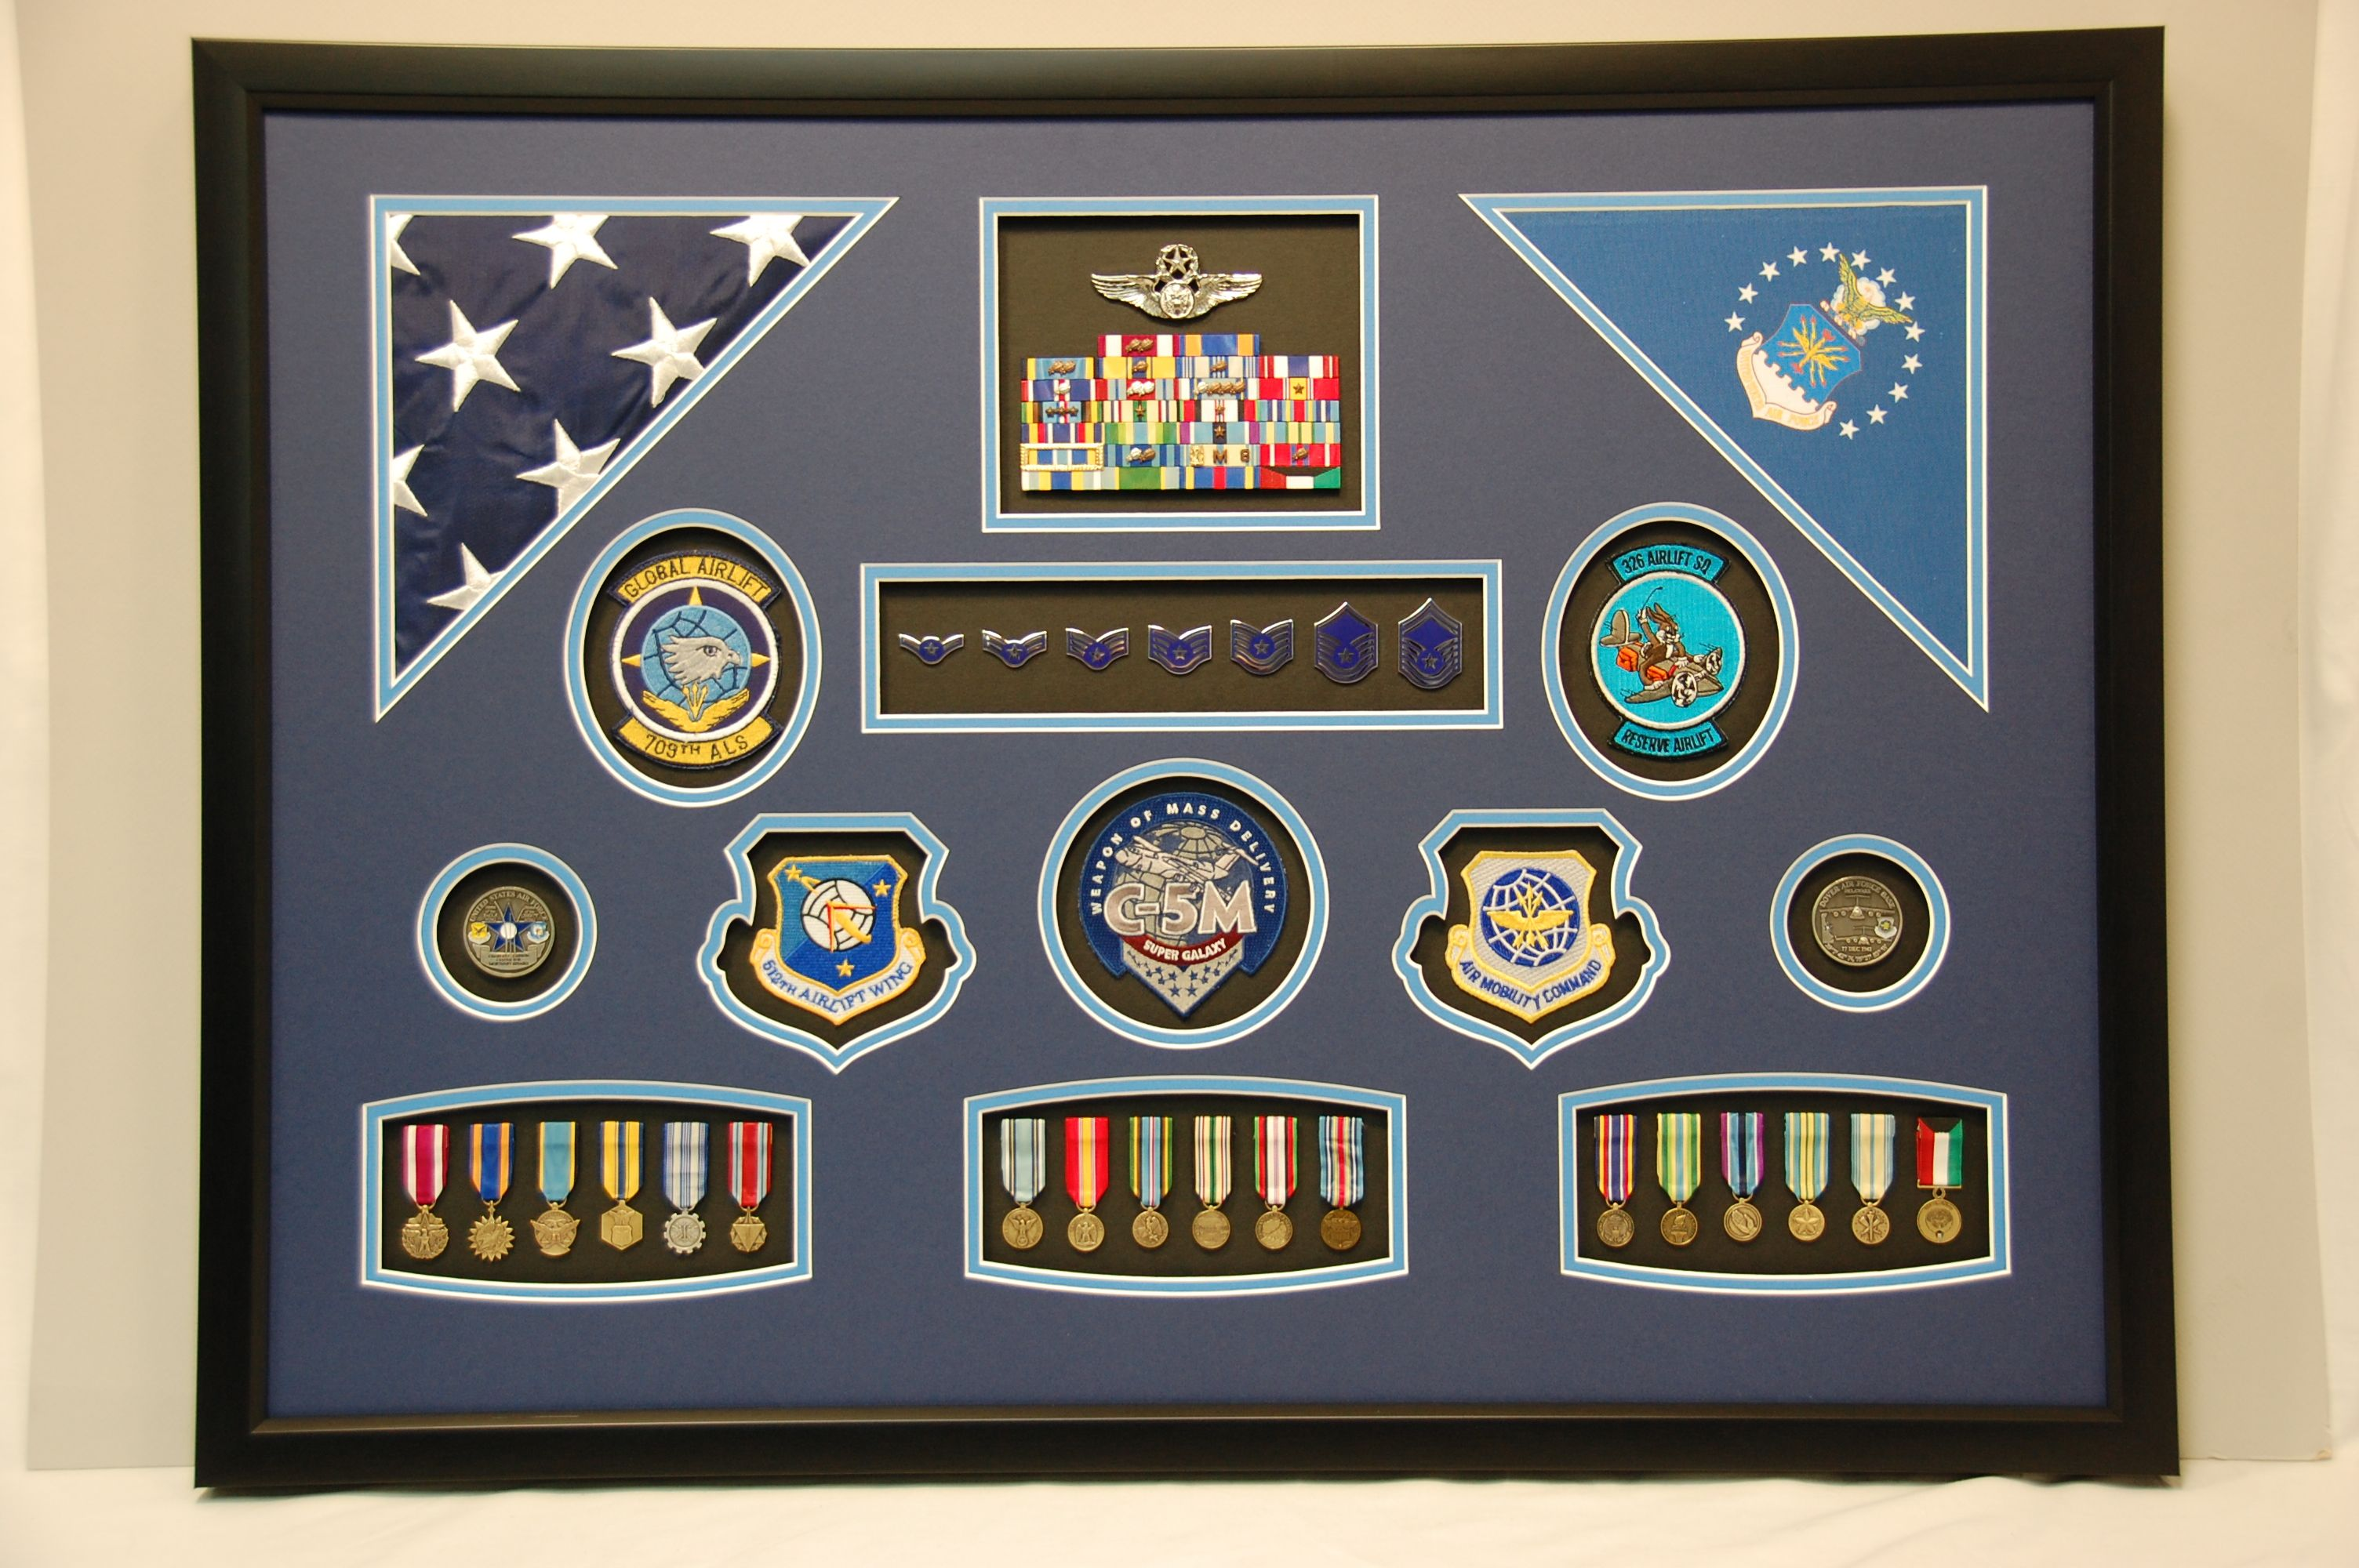 24 X 30 Us Air Force Retirement Shadow Box Display We Designed For A Ceremony Miniature Medals Were Used In This One Shadow Box Military Shadow Box Display